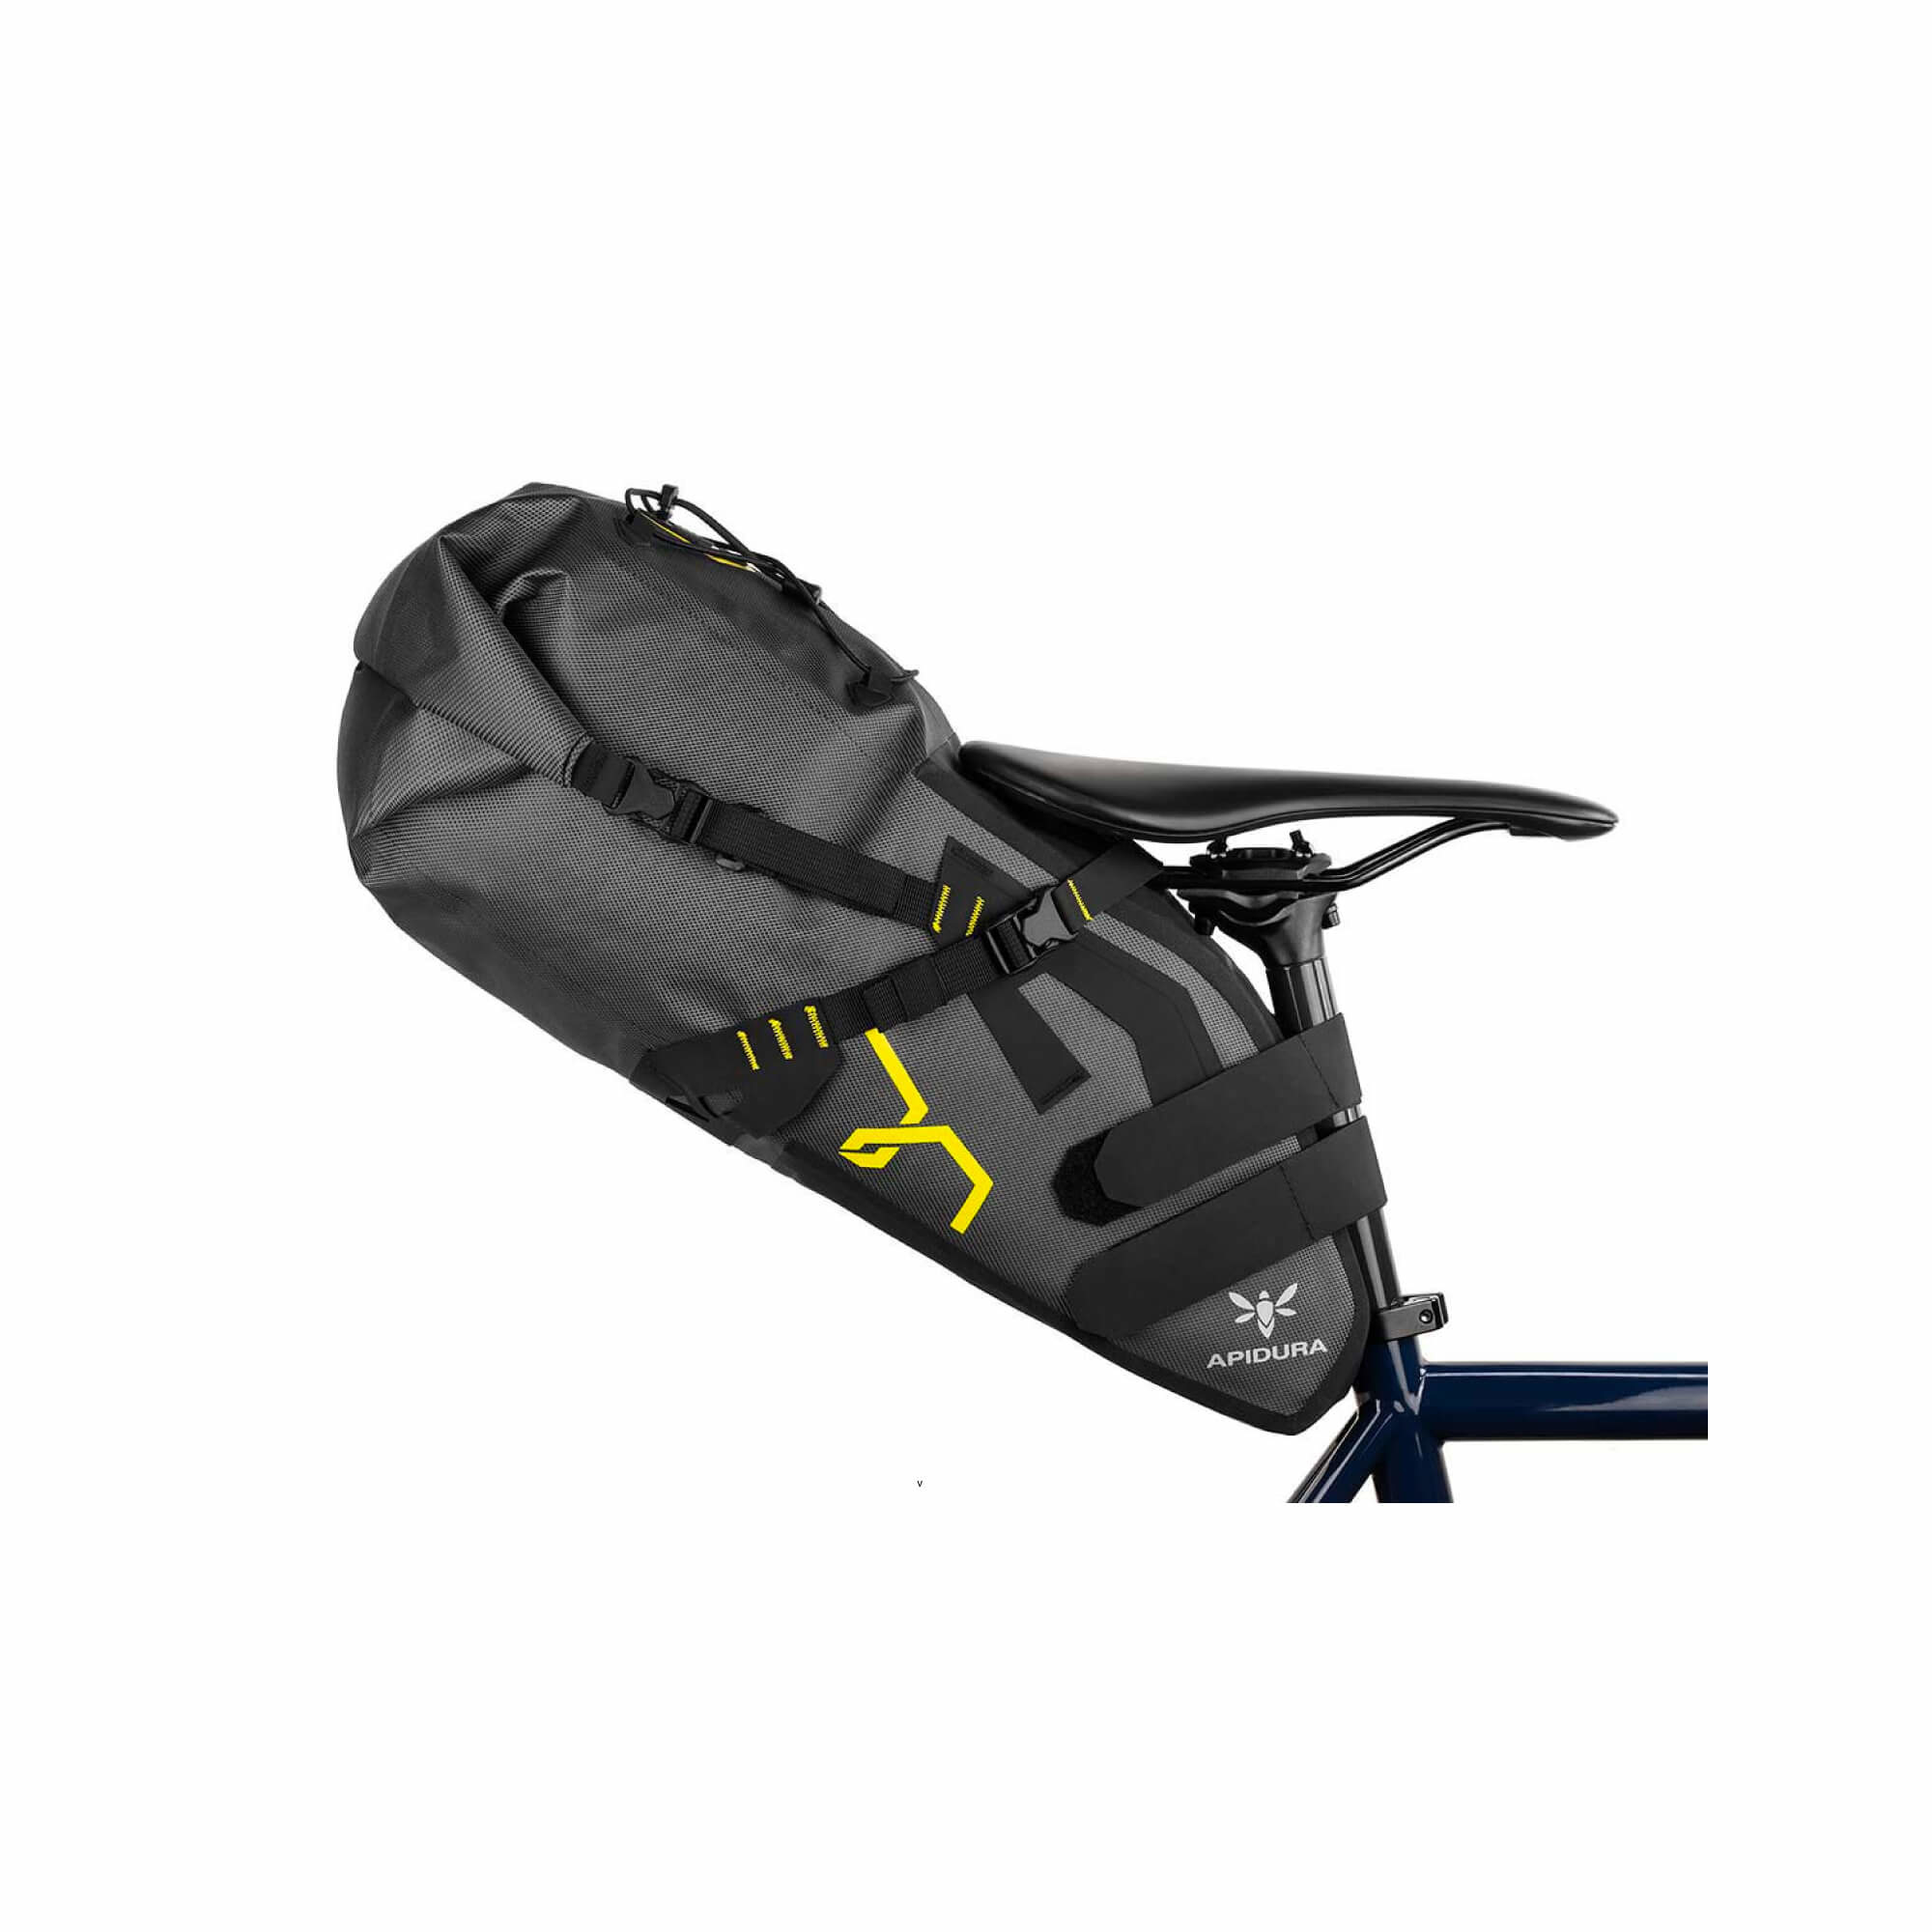 Expedition Saddle Pack 17 L-3